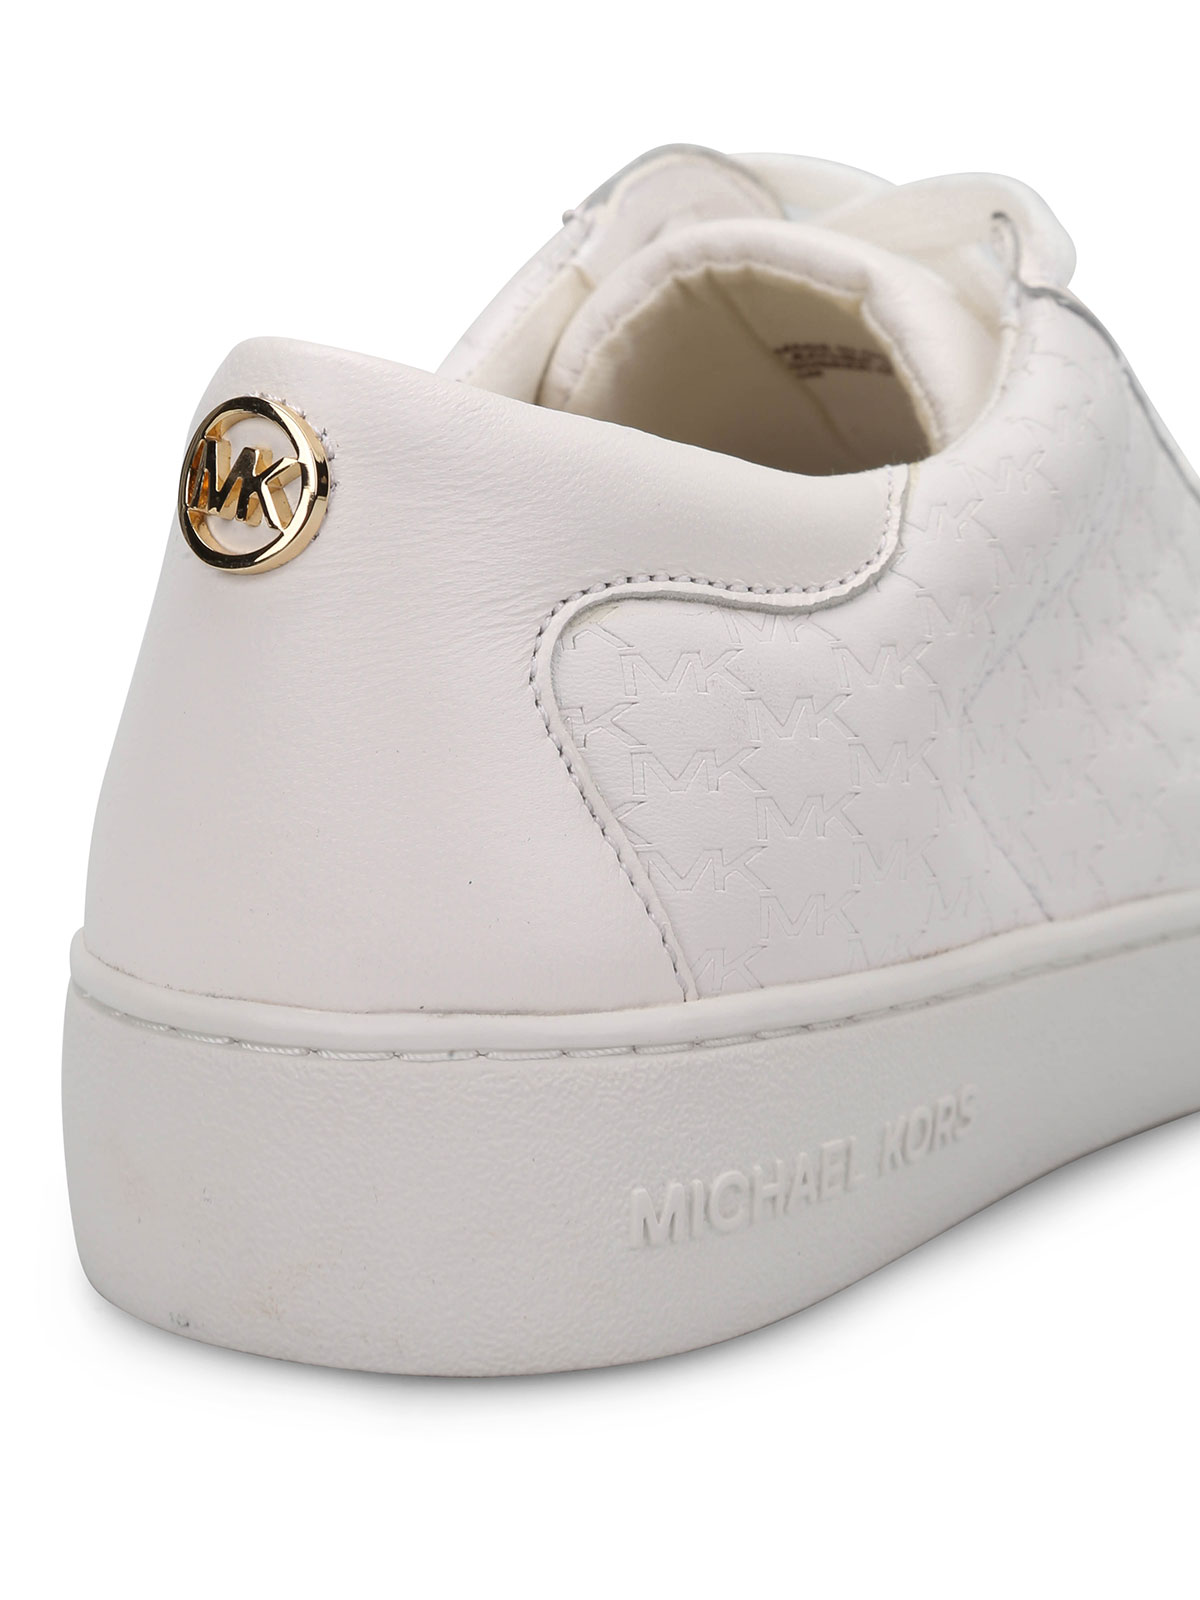 0a77c9f7a52f0 Michael Kors - Colby leather sneakers - trainers - 43R5COFP2L 085